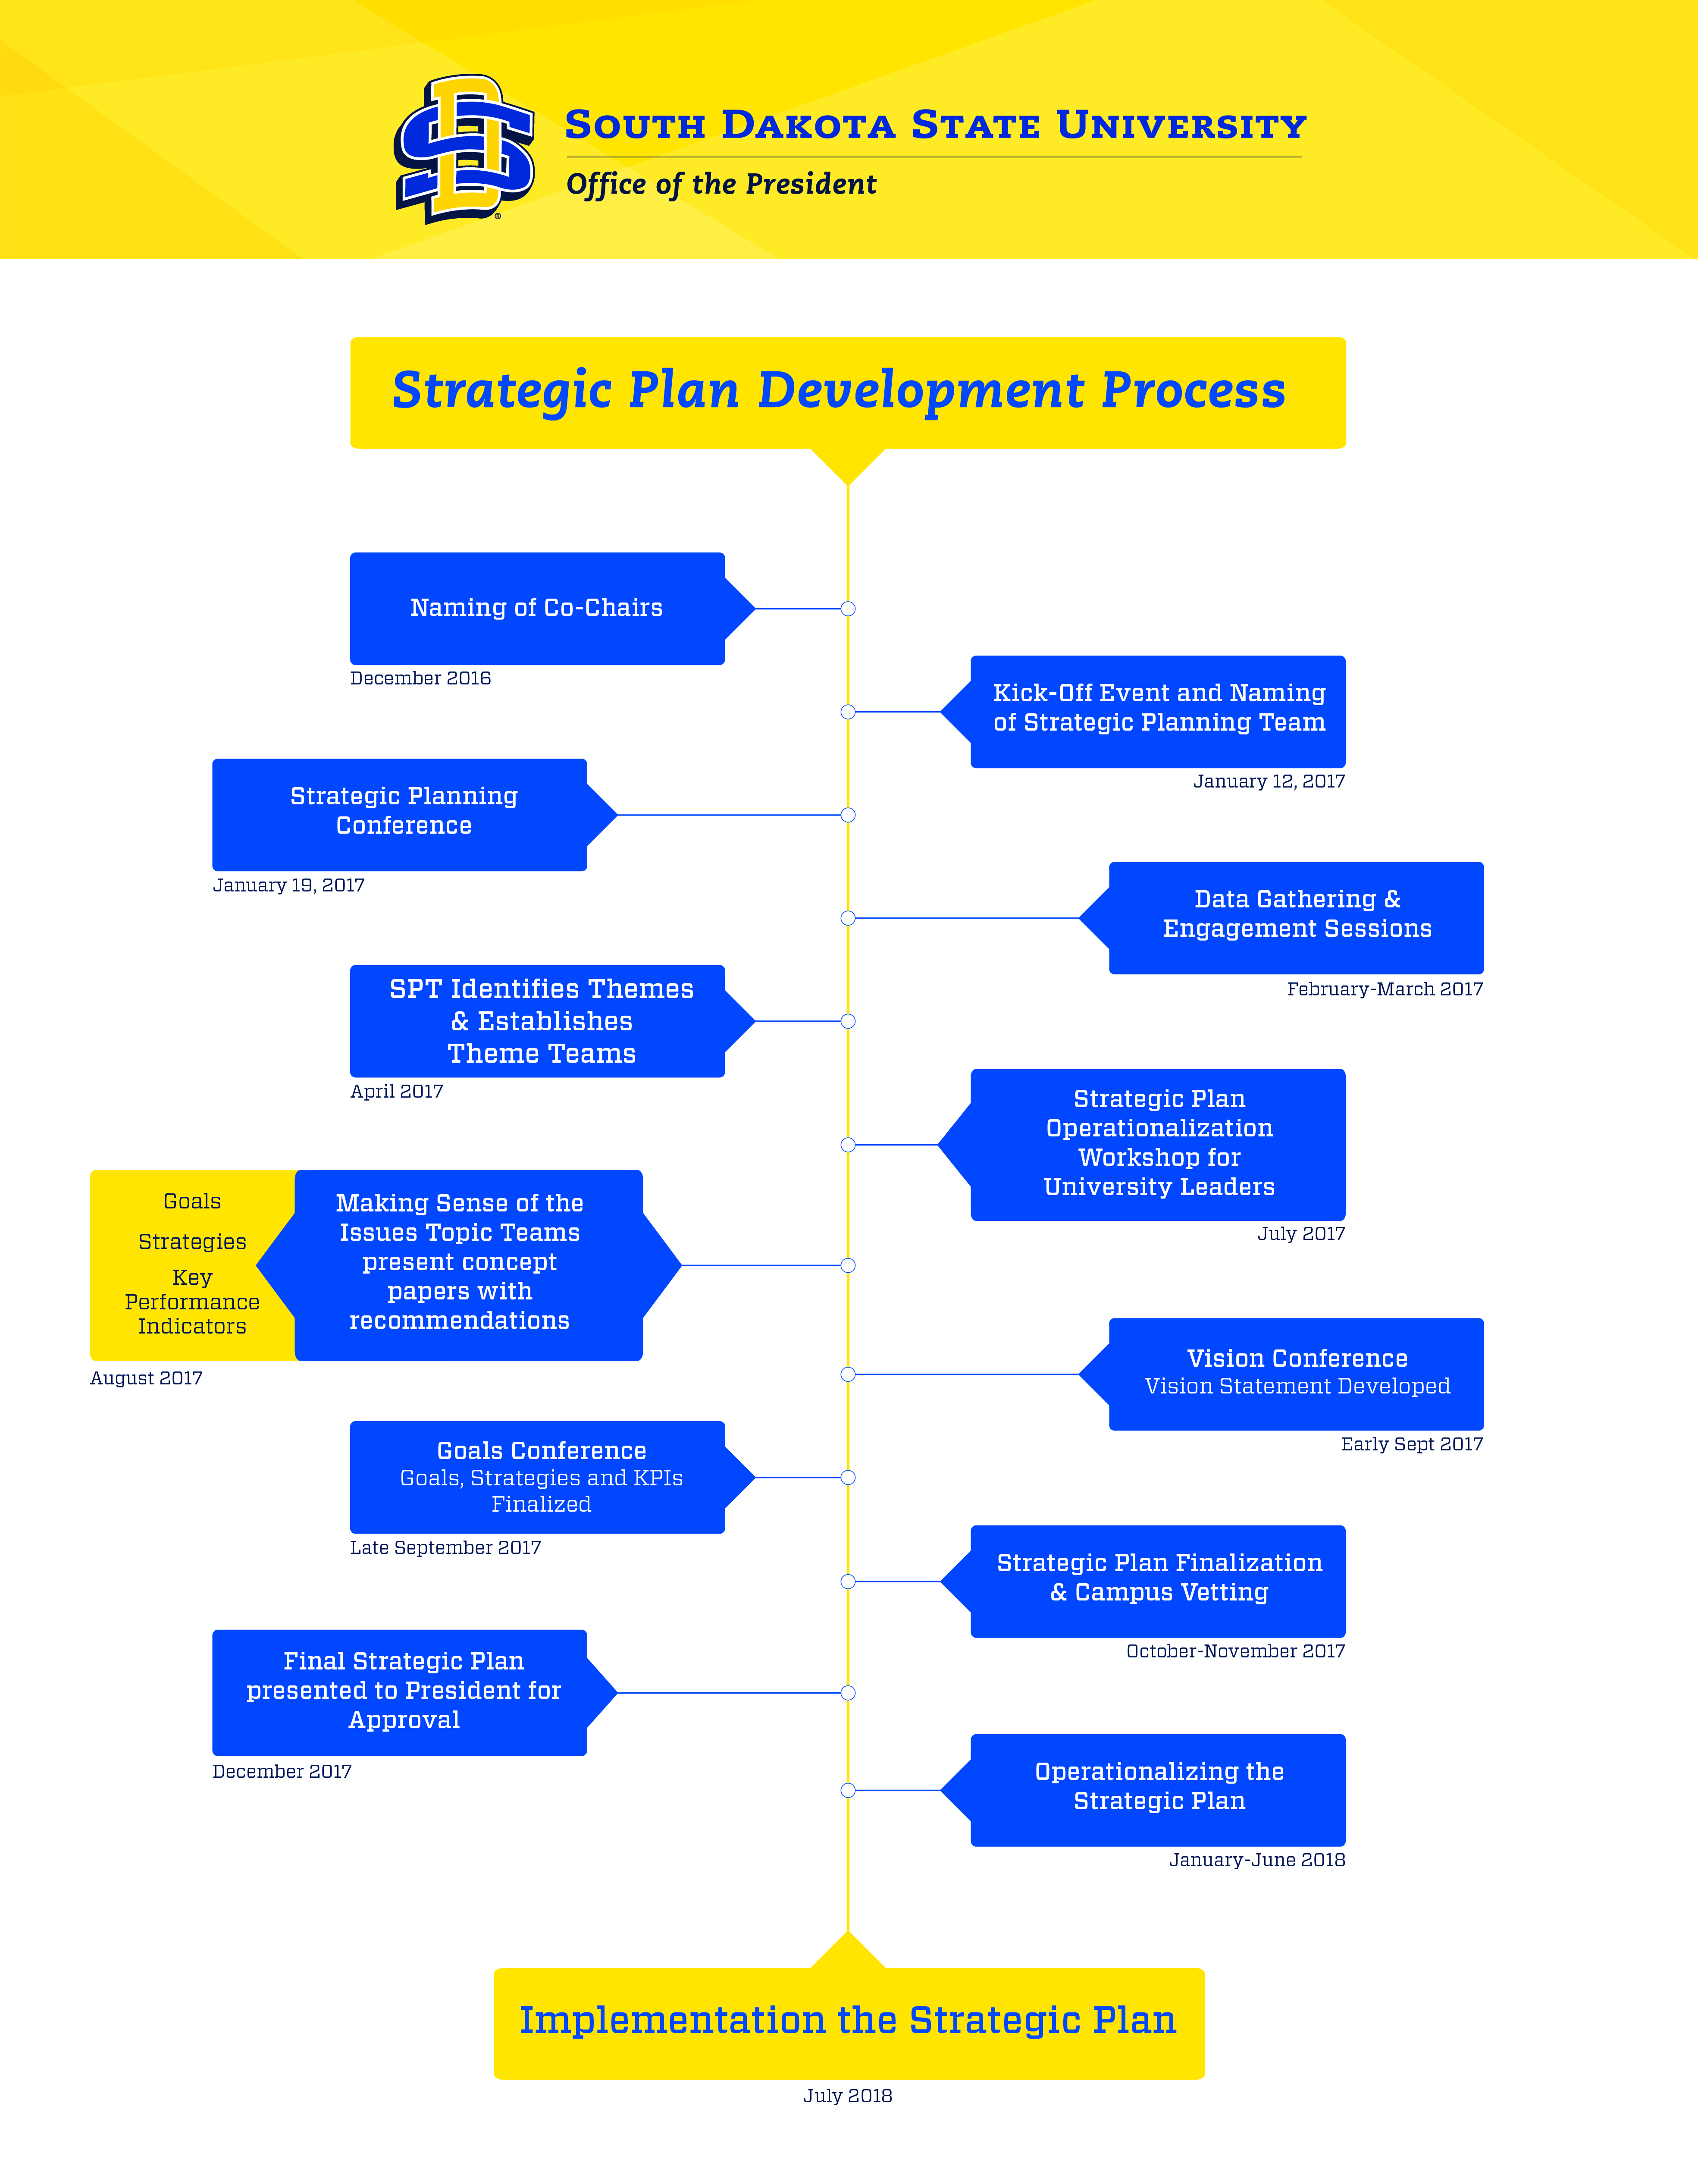 Strategic Plan, 2023 - Development Process